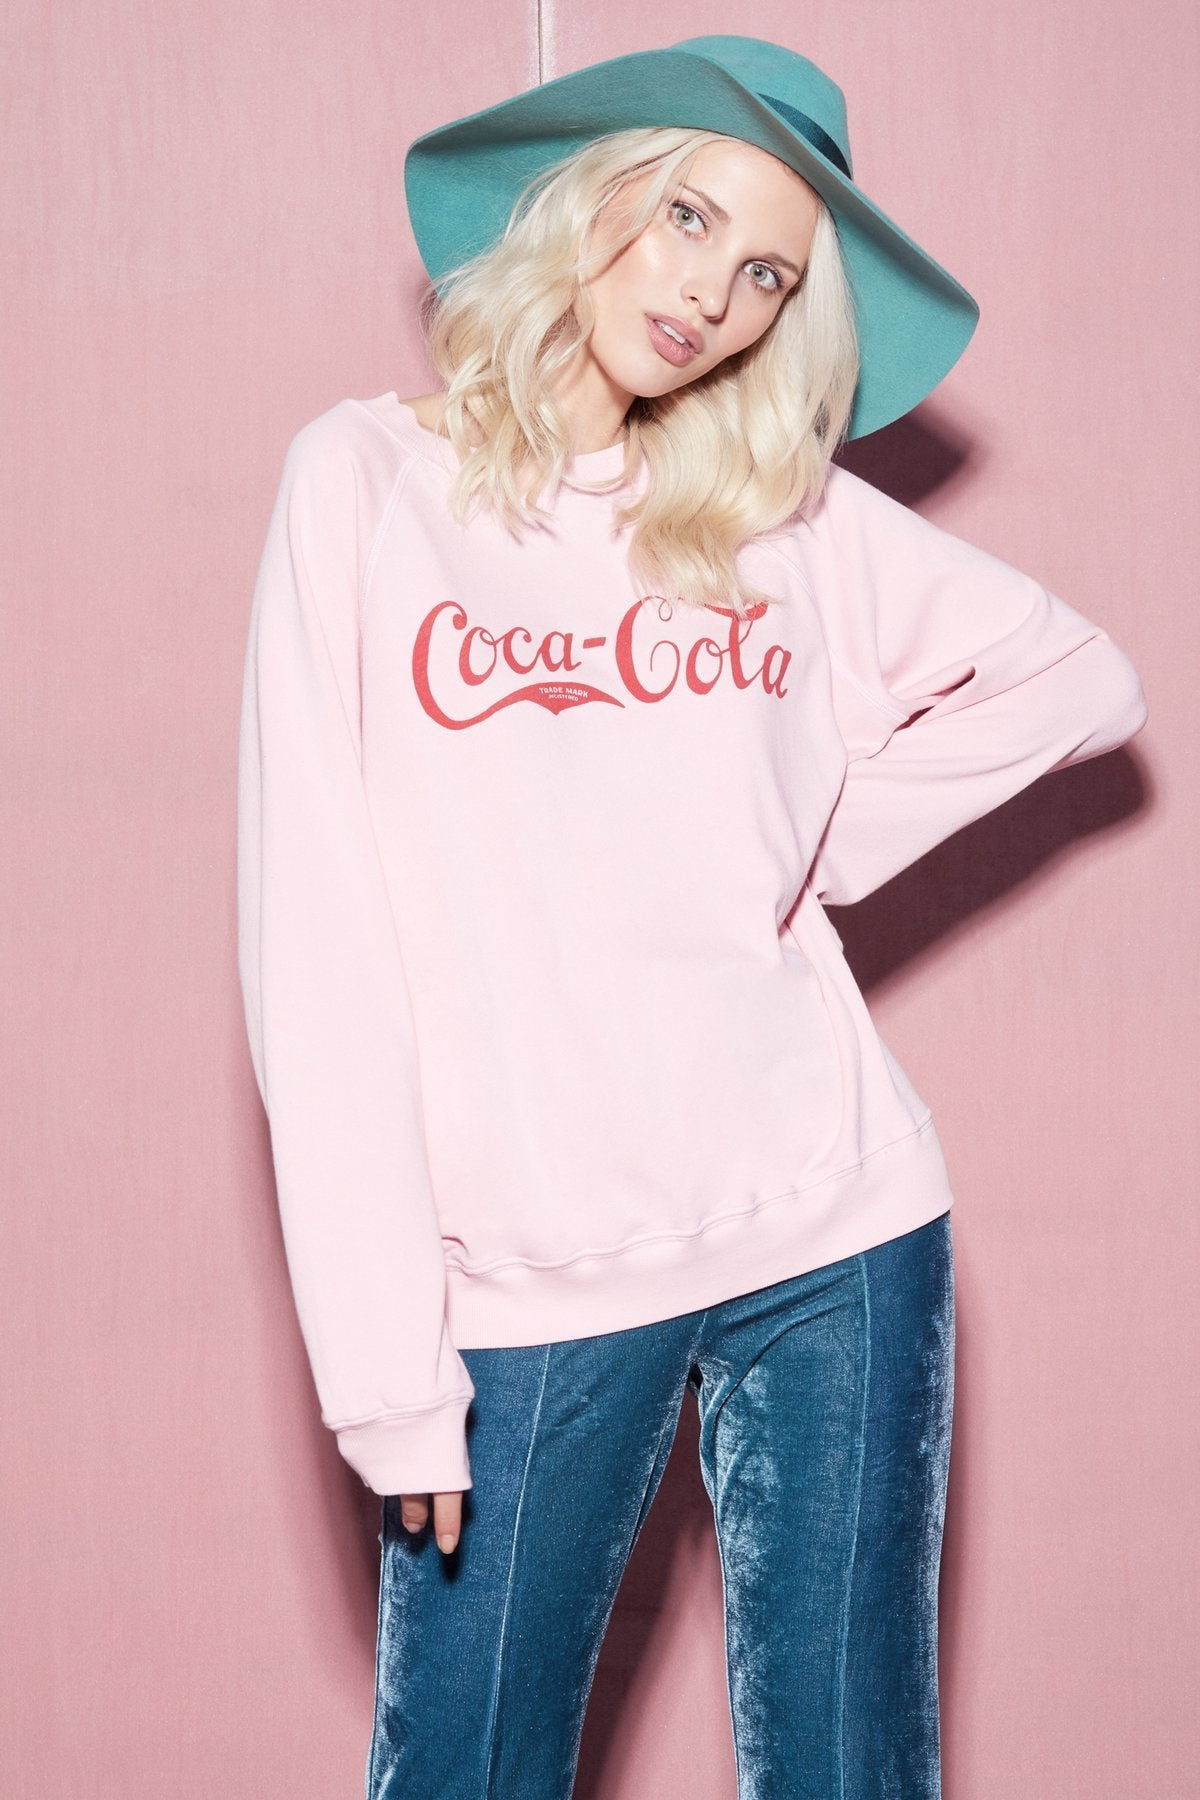 Vintage Coca-Cola Sommers Sweatshirt - Salty Mermaid Swim